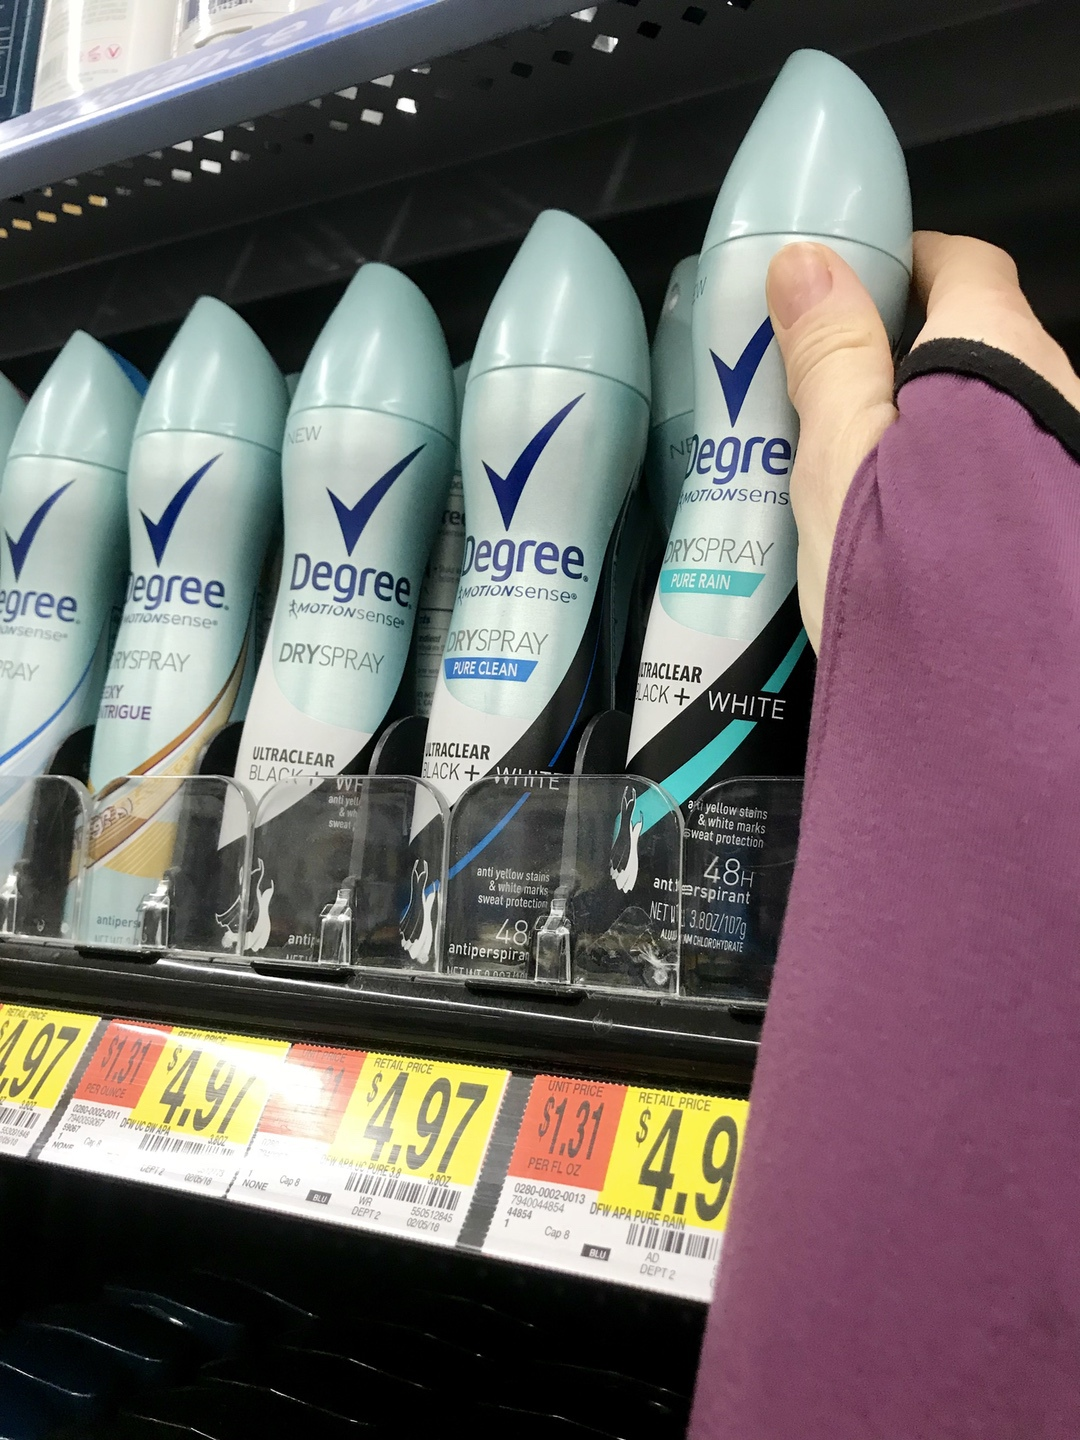 Mom Confidence #SavingStyleAtWM #beauty #motherhood #confidence #degreewomen #ad